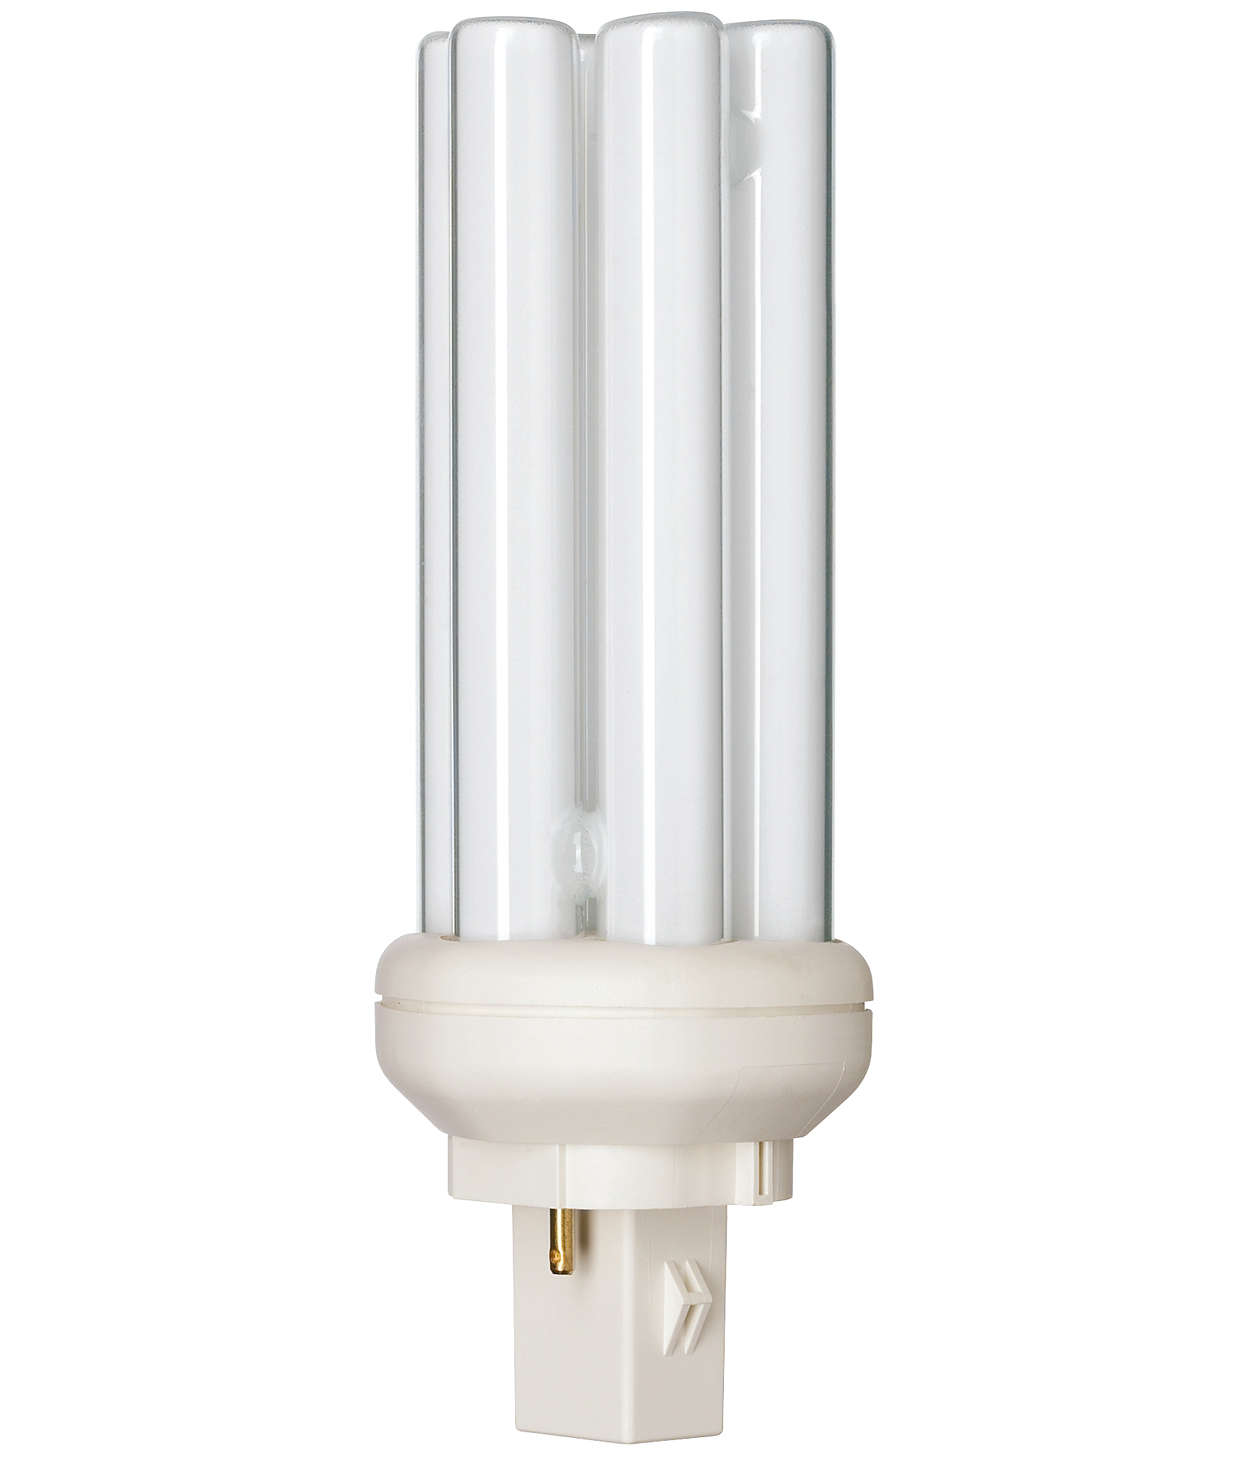 Dulux t lampen oder philips pl t licht for Lampen philips